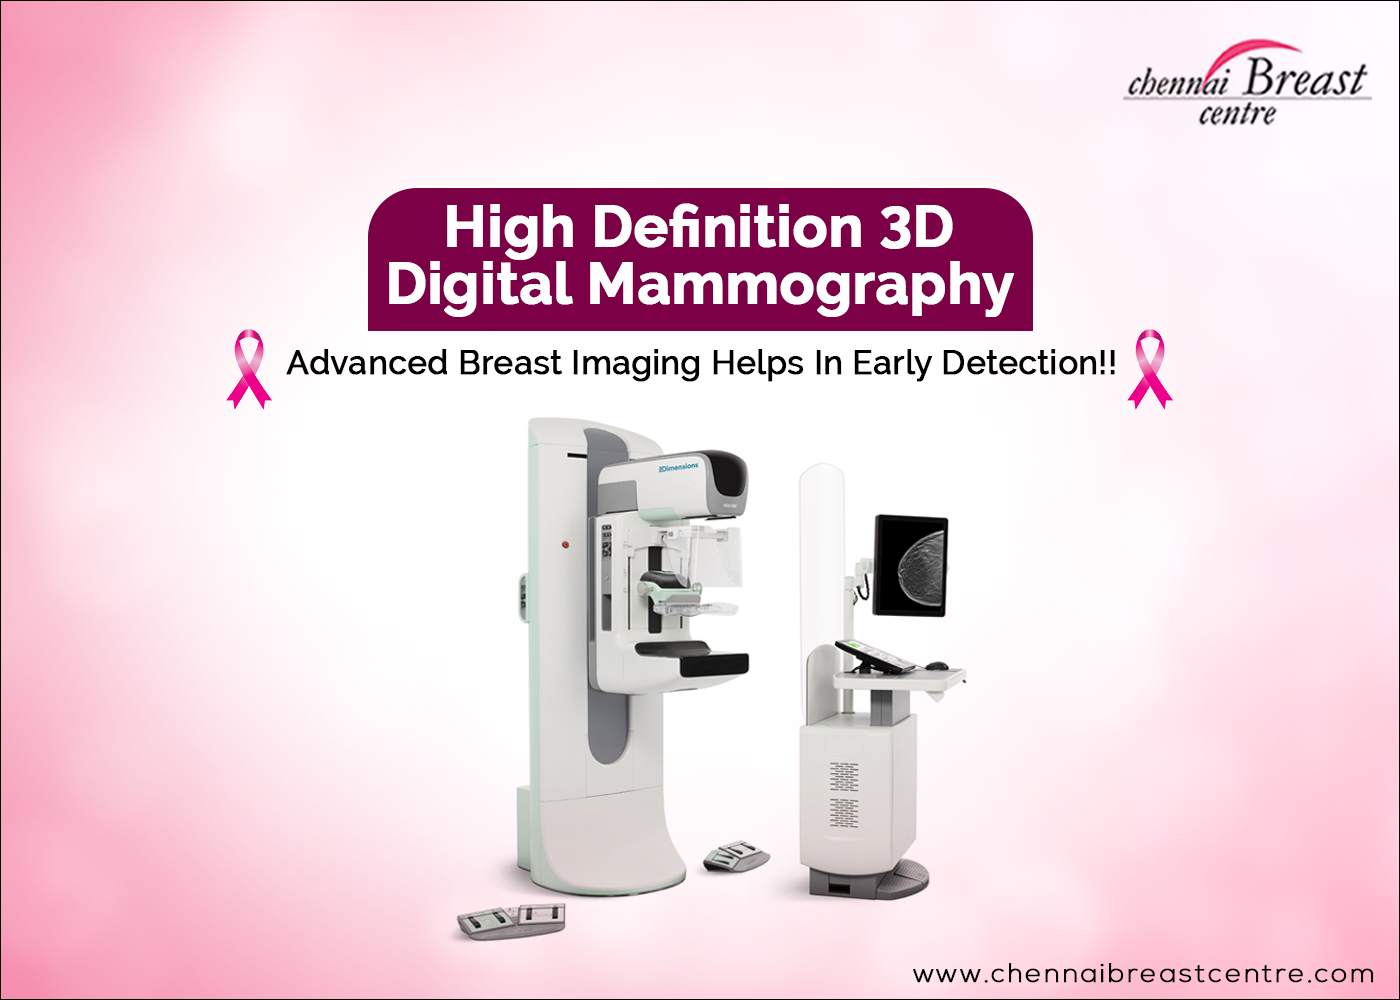 Pin by Chennai Breast Centre on 3D Mammography Machine